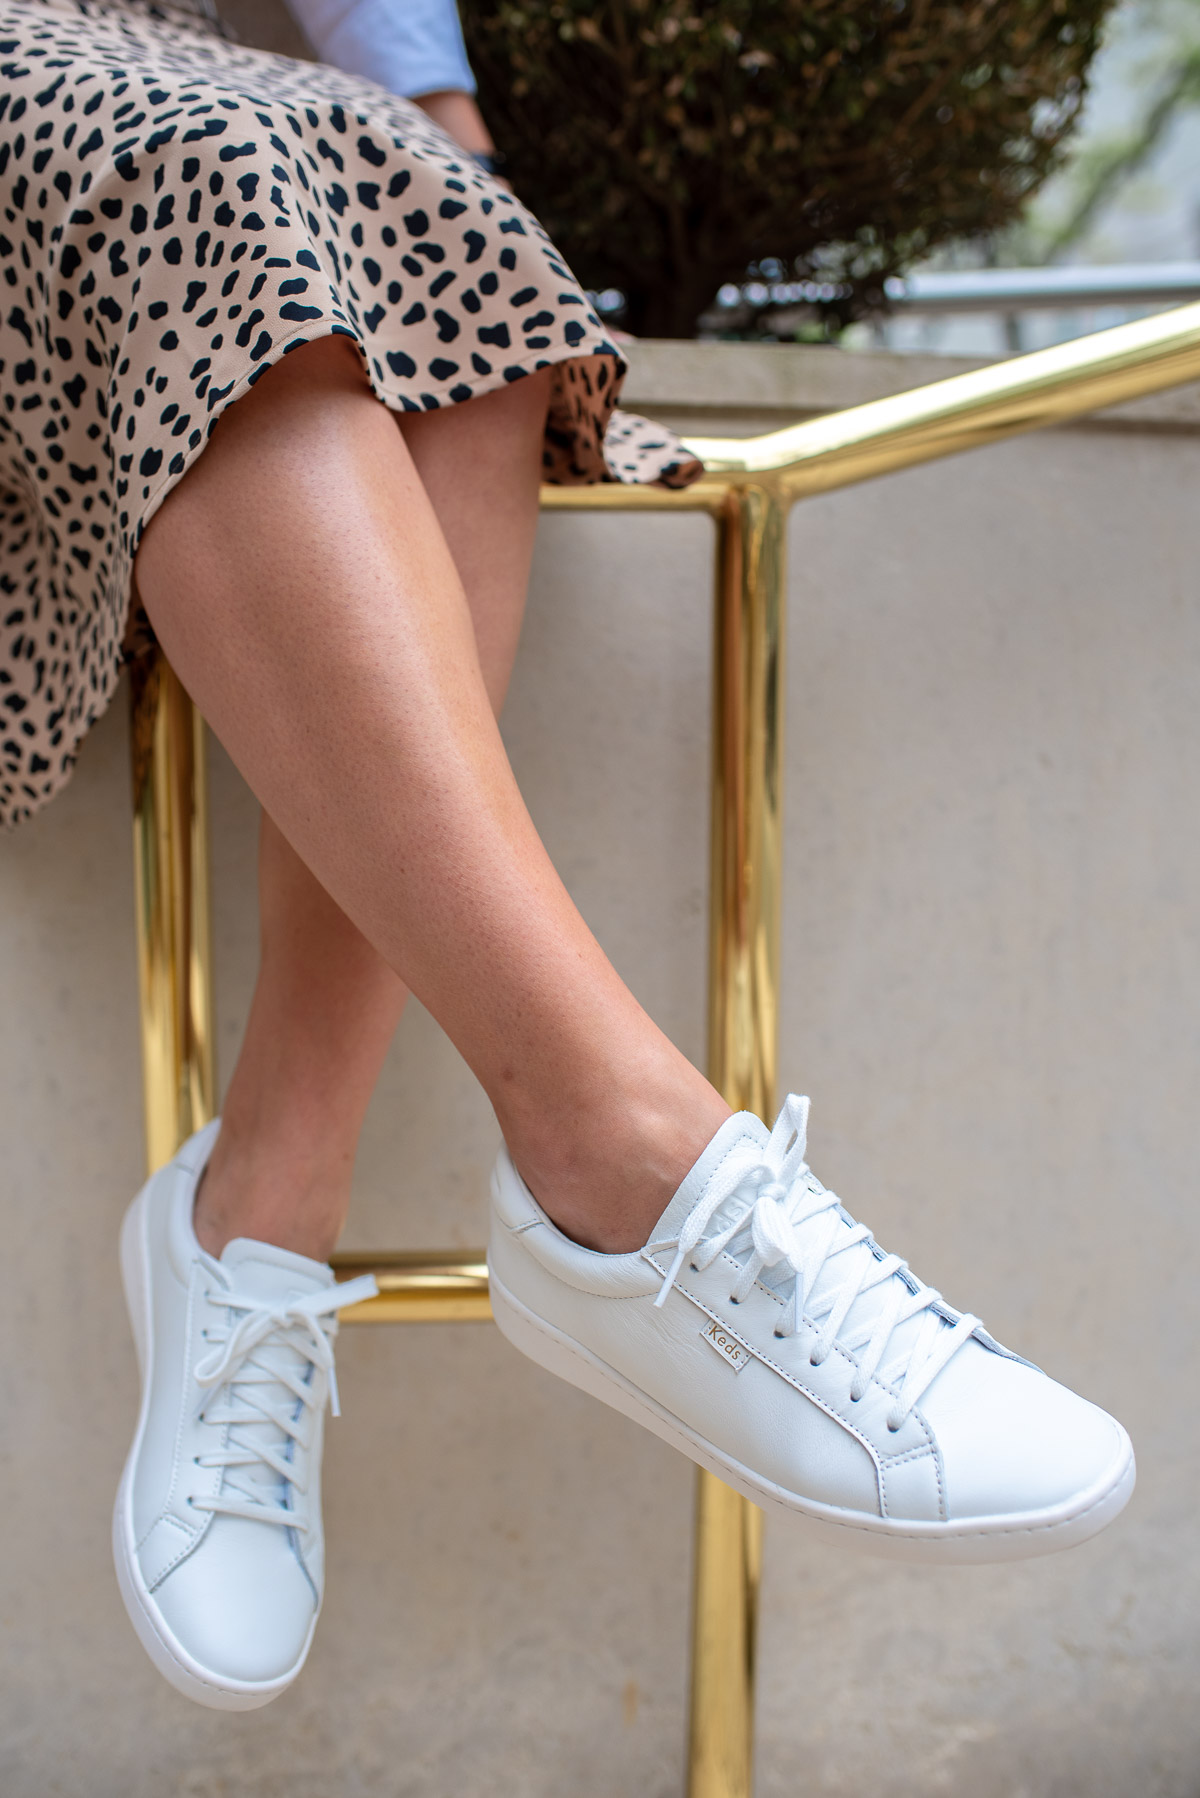 leopard skirt white sneakers outfit